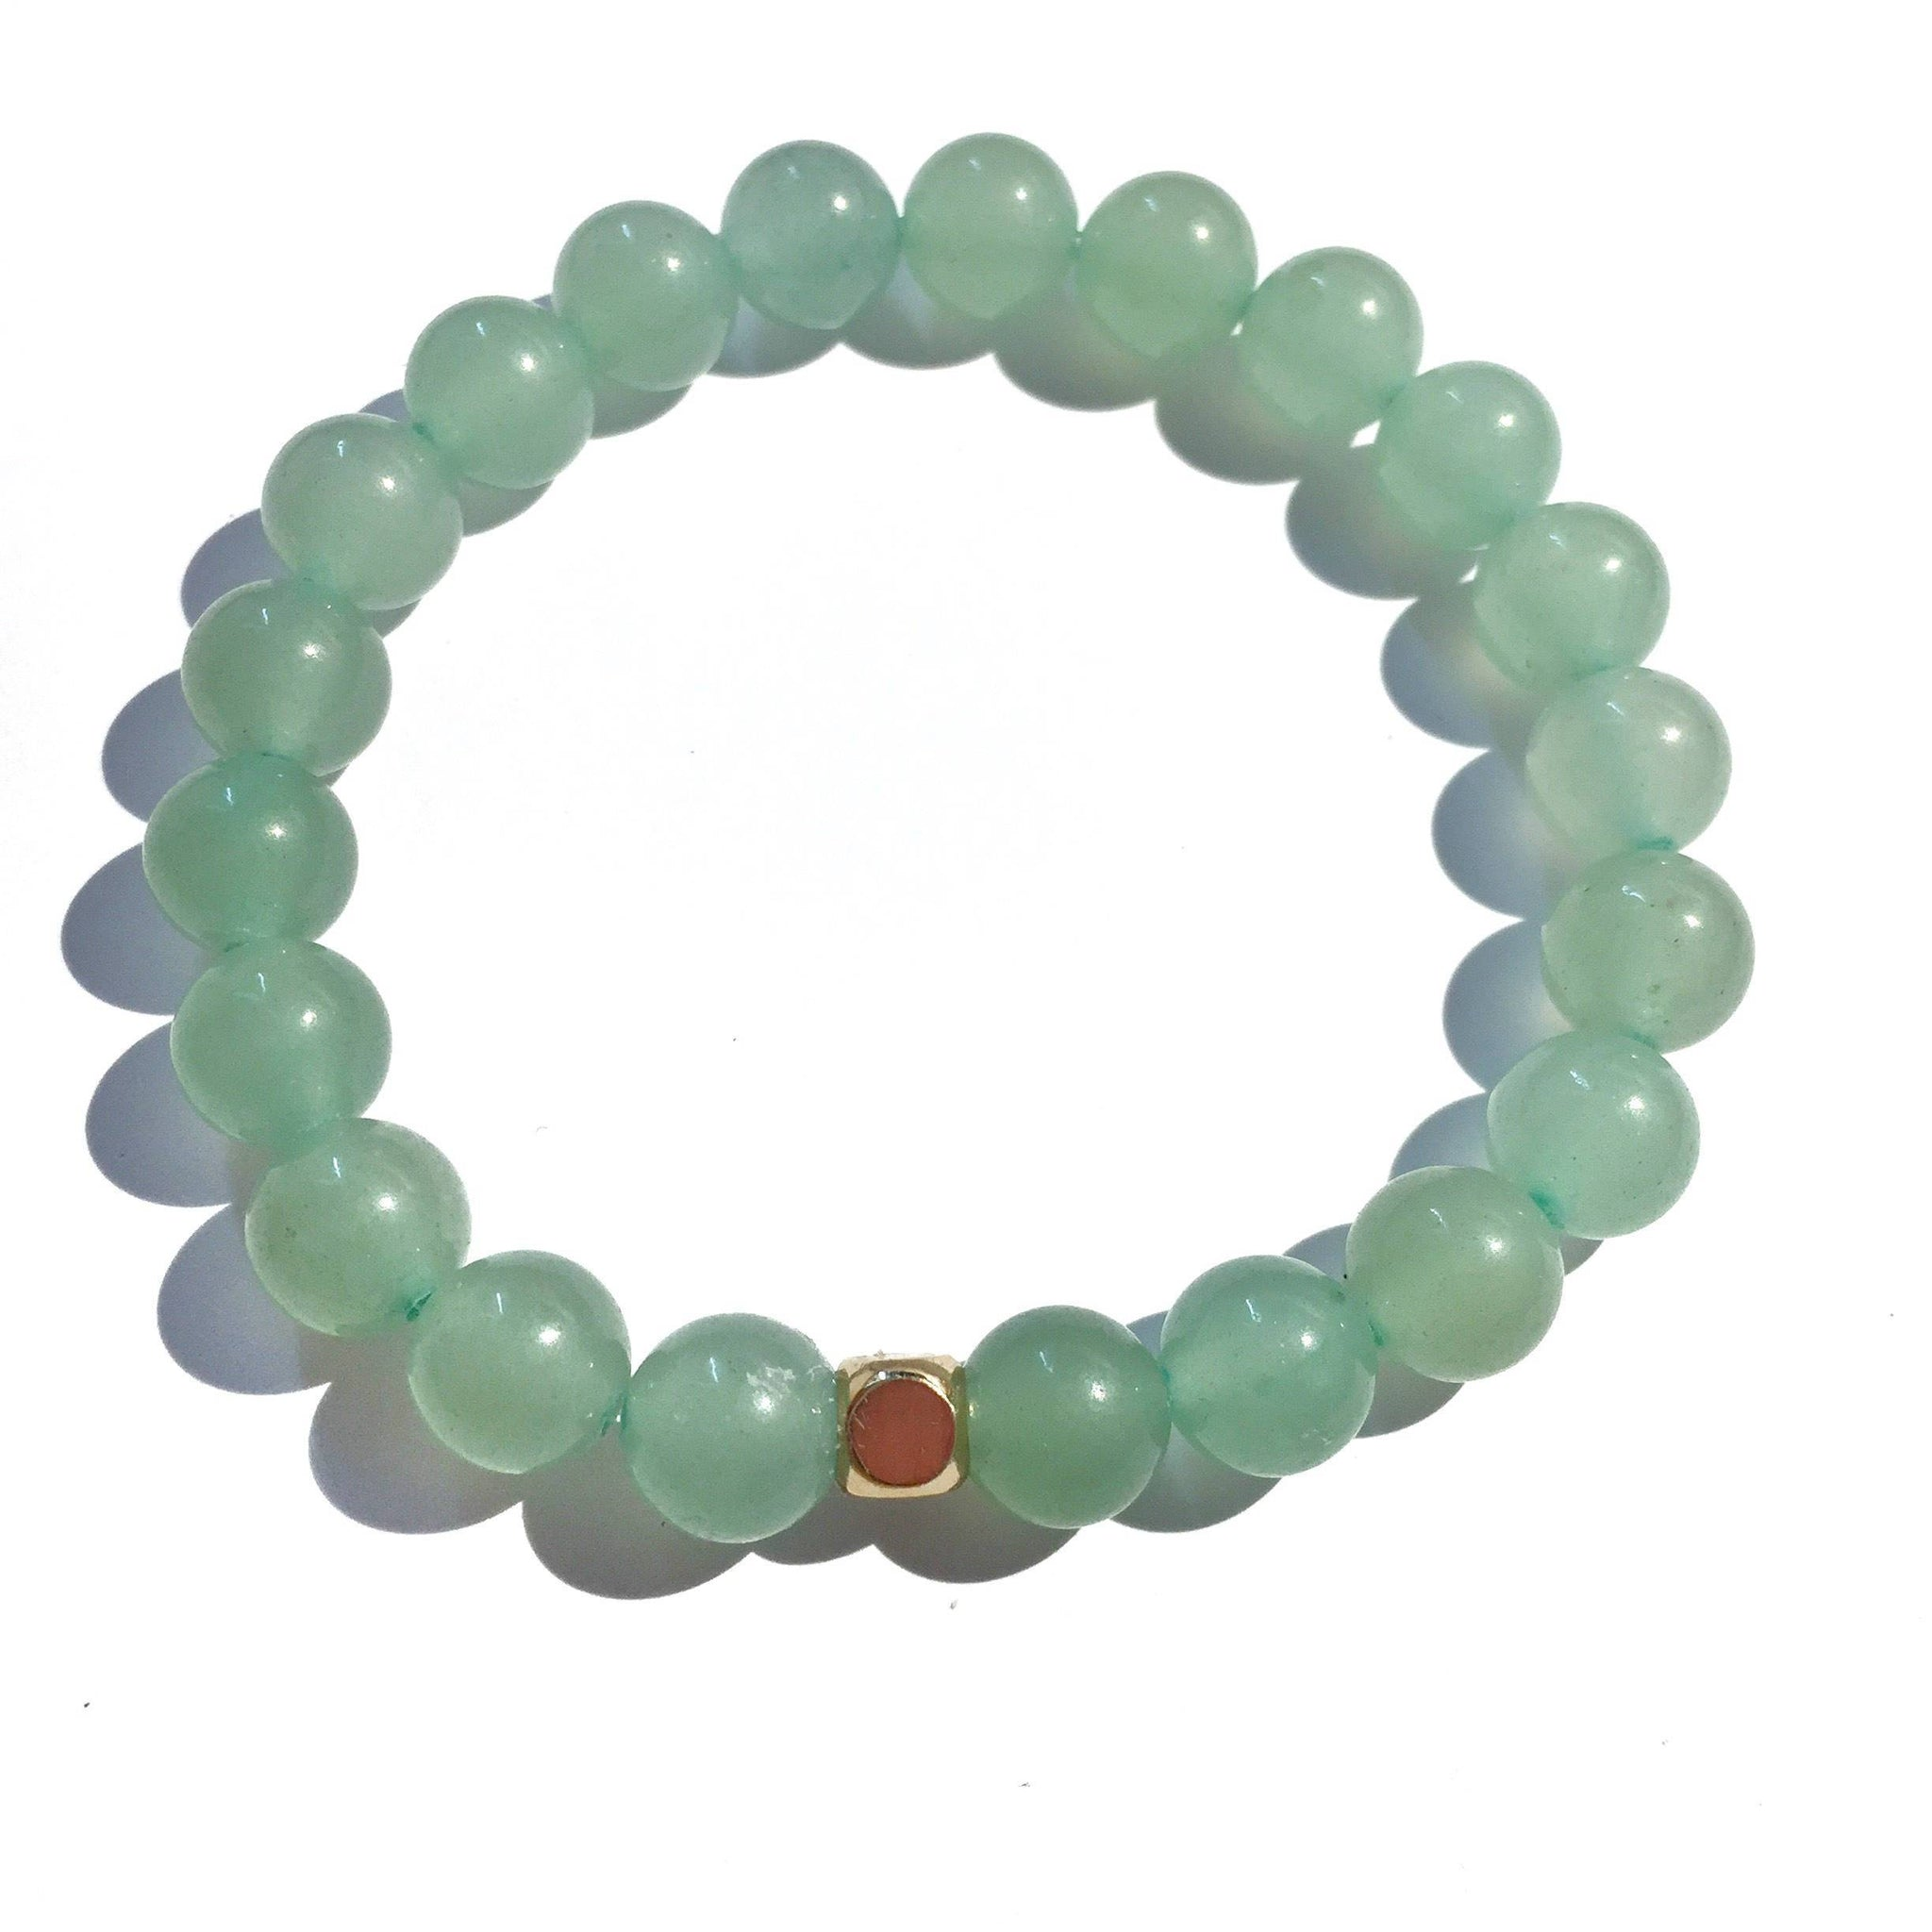 Gloss Green Aventurine (Good Fortune)